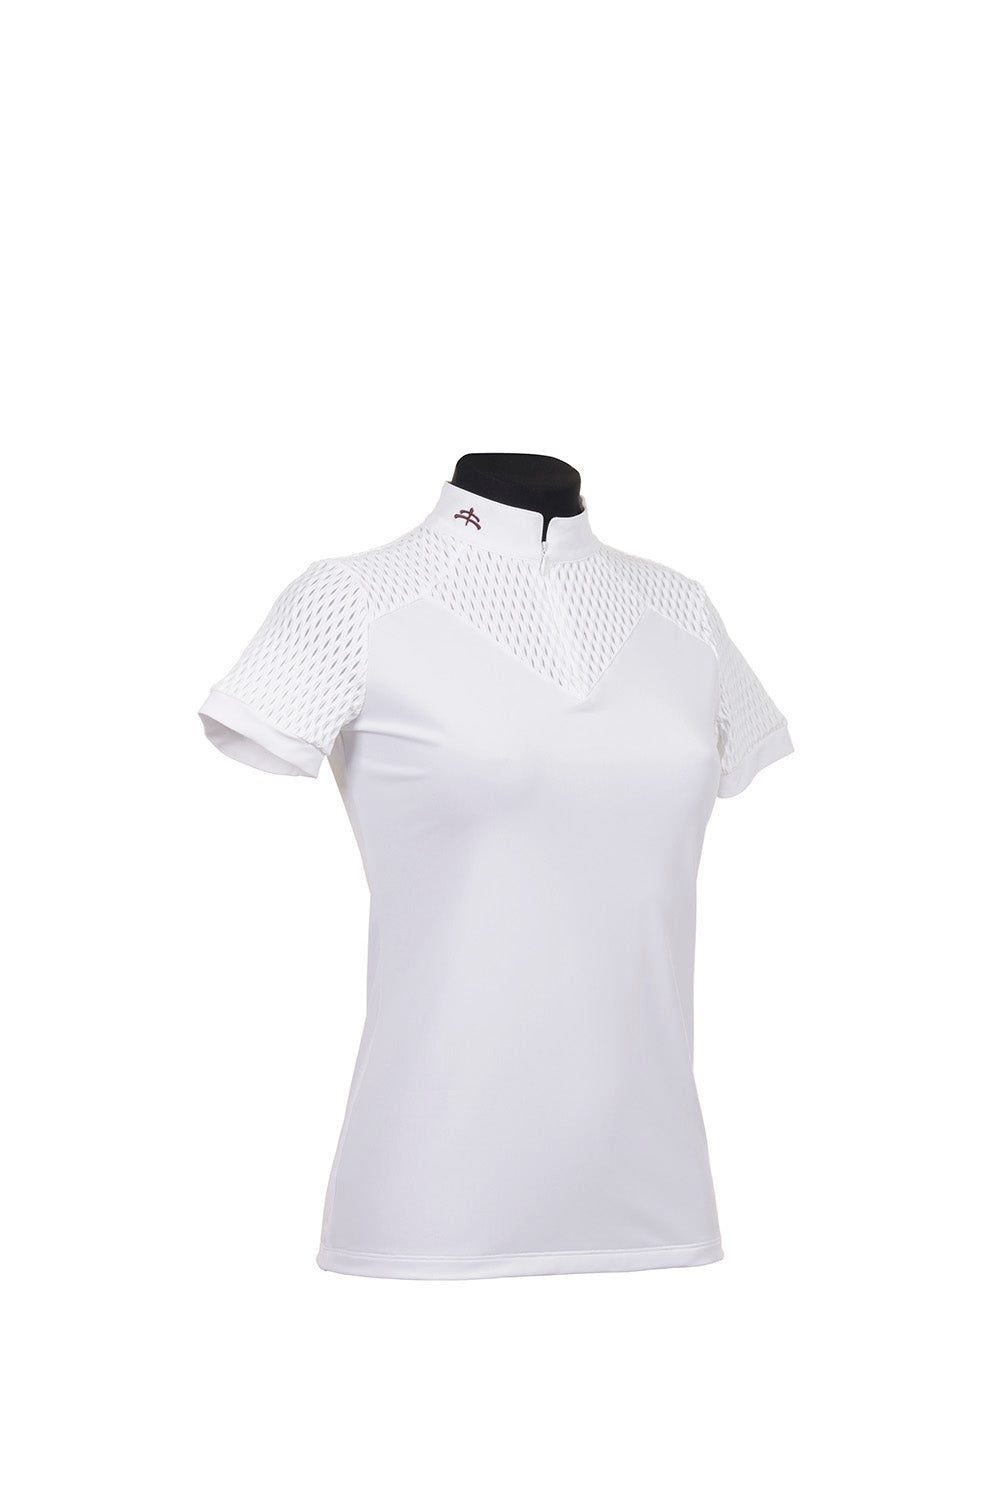 KJ | ladies shirt short sleeve | technical fabric | short sleeves shirt | short sleeves riding shirt | lady shirt | lady riding shirt | riding shirt | ladies riding shirt | lady riding polo shirt | comfort of movement | Makebe | clothing | equestrian | riding | technical material | made in Italy | elegance | white |